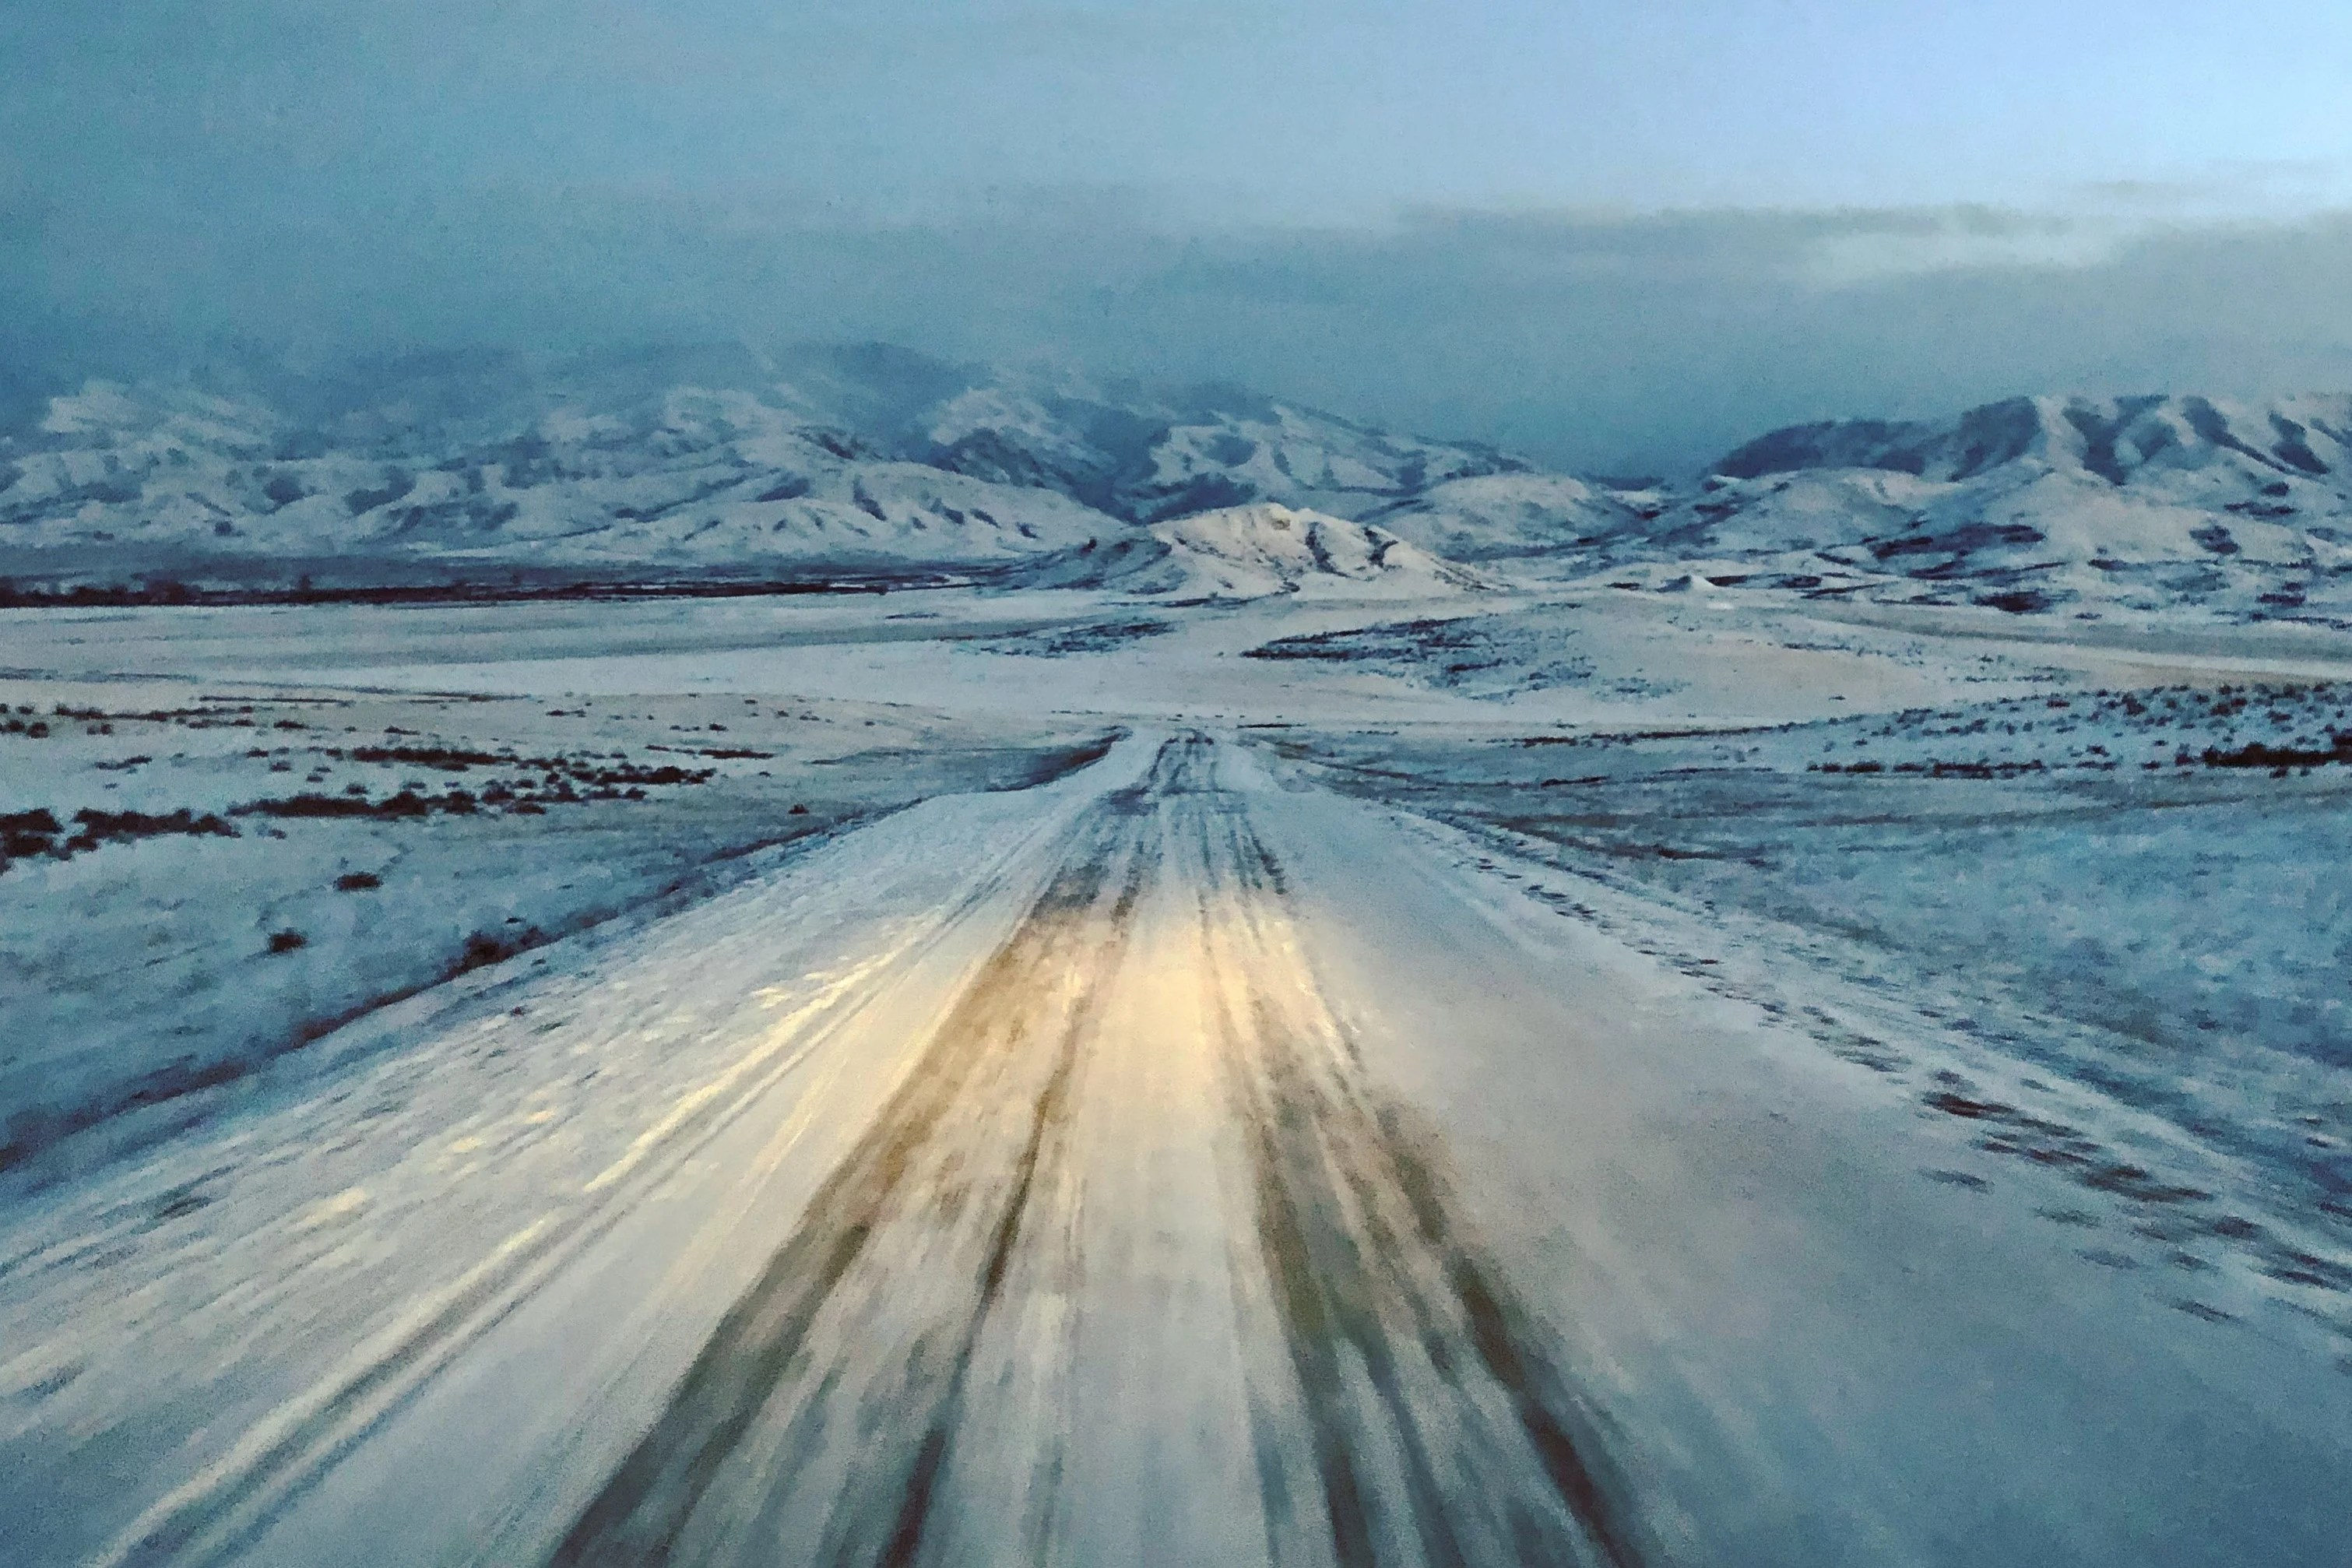 Kazakh winters are beautiful, but damn they are cold.